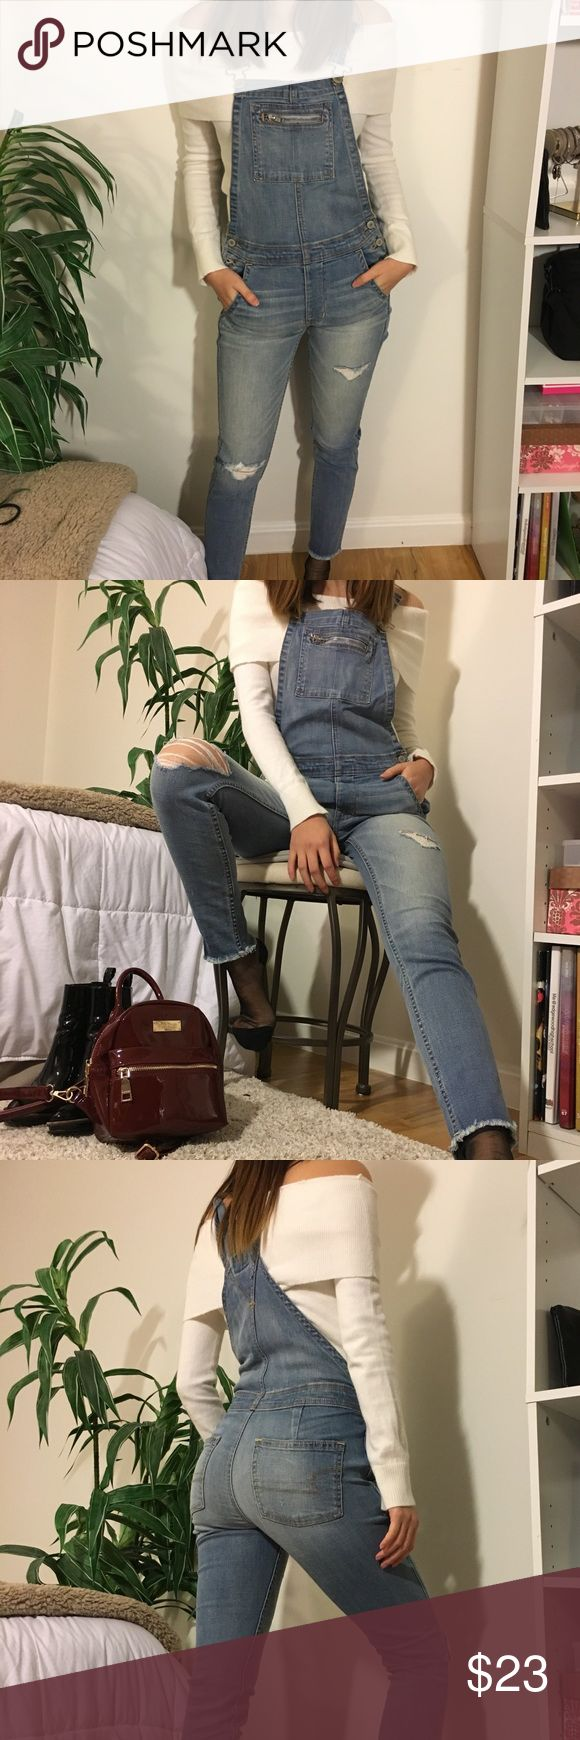 Distressed overalls Light wash skinny jean overalls from American eagle. Stretchy jean material so they're super comfortable! Size xxs but they fit me really well, I typically wear a size small. Brand new condition American Eagle Outfitters Jeans Overalls